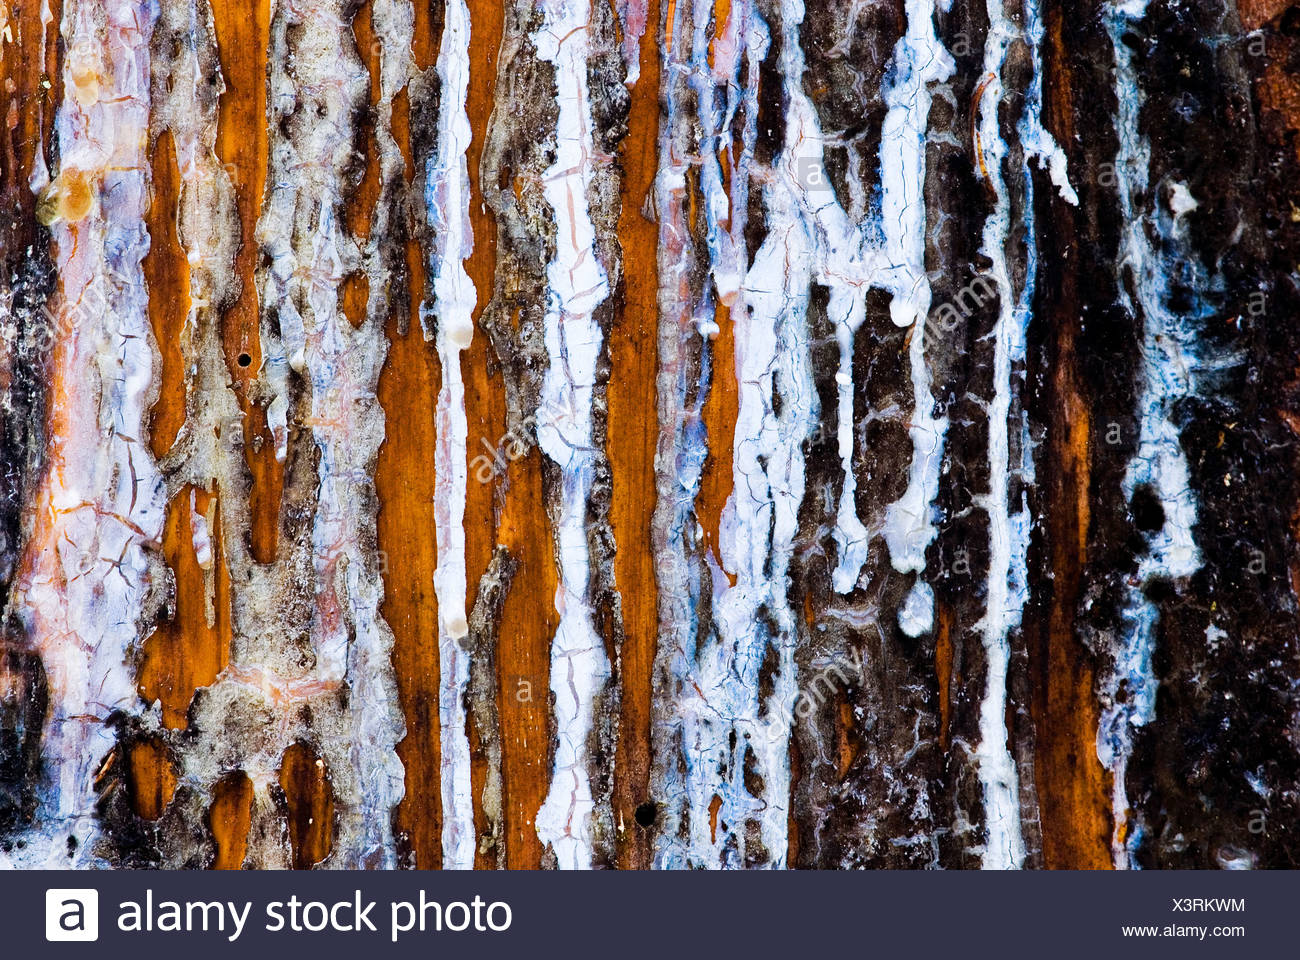 fijnspar; norway spruce; - Stock Image